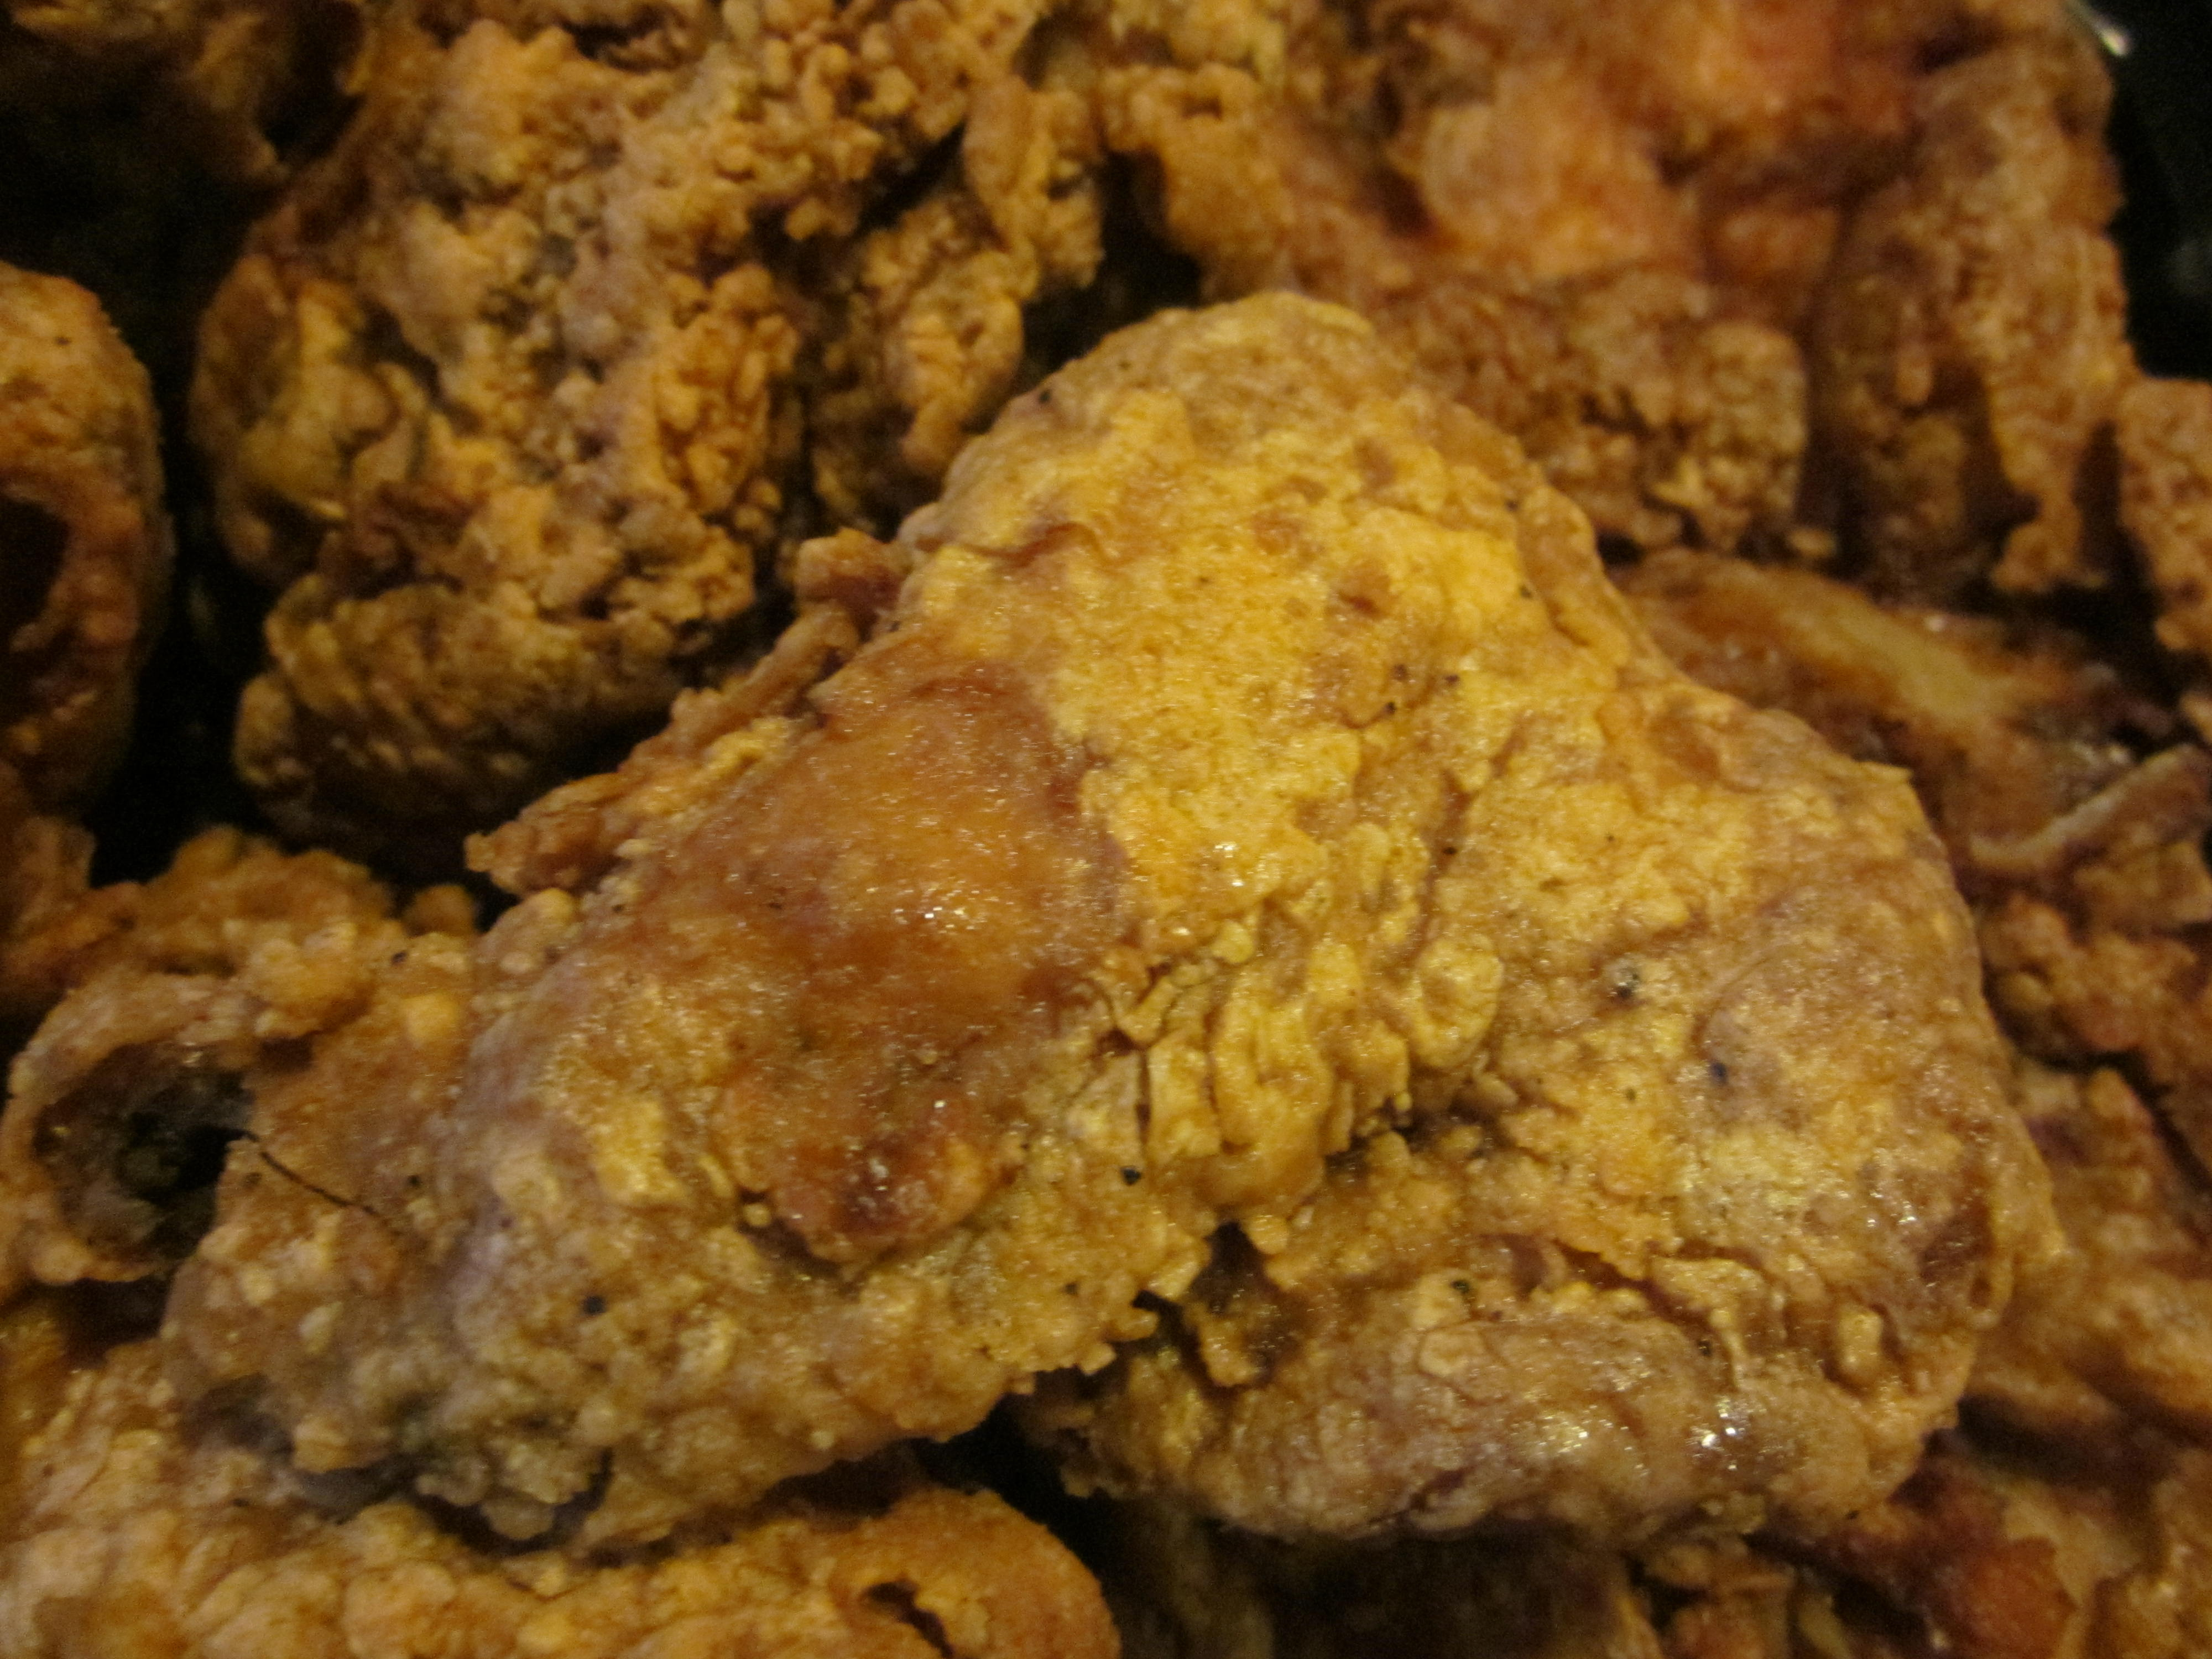 File safeway signature cafe fried chicken 1 jpg wikimedia commons - Defrost chicken safe way ...